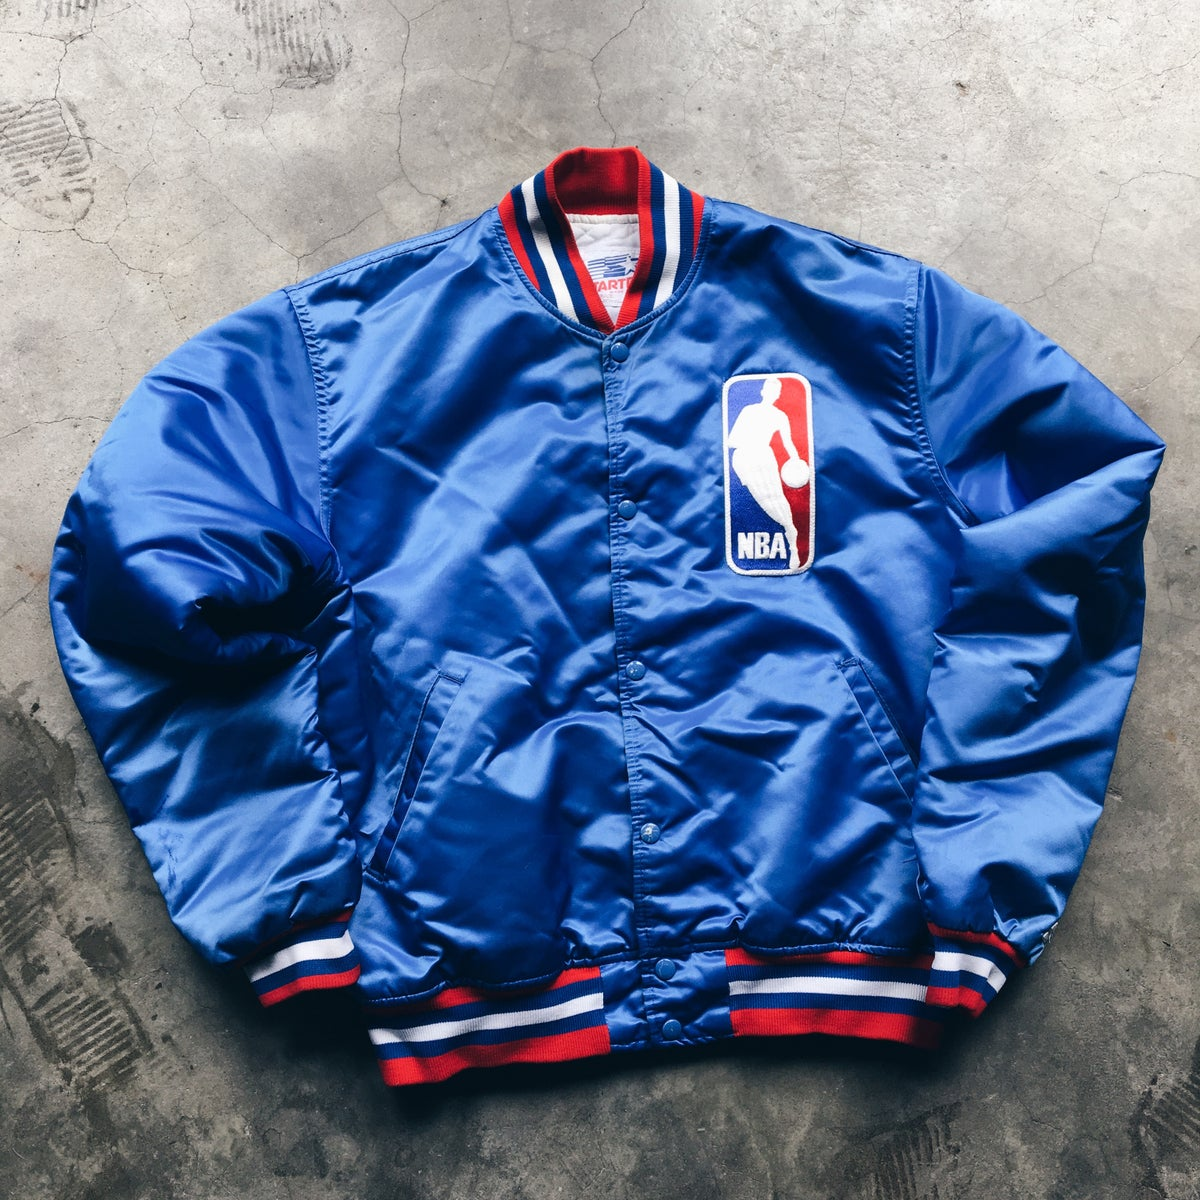 Image of Original Late 80's Starter NBA Referees Jacket.